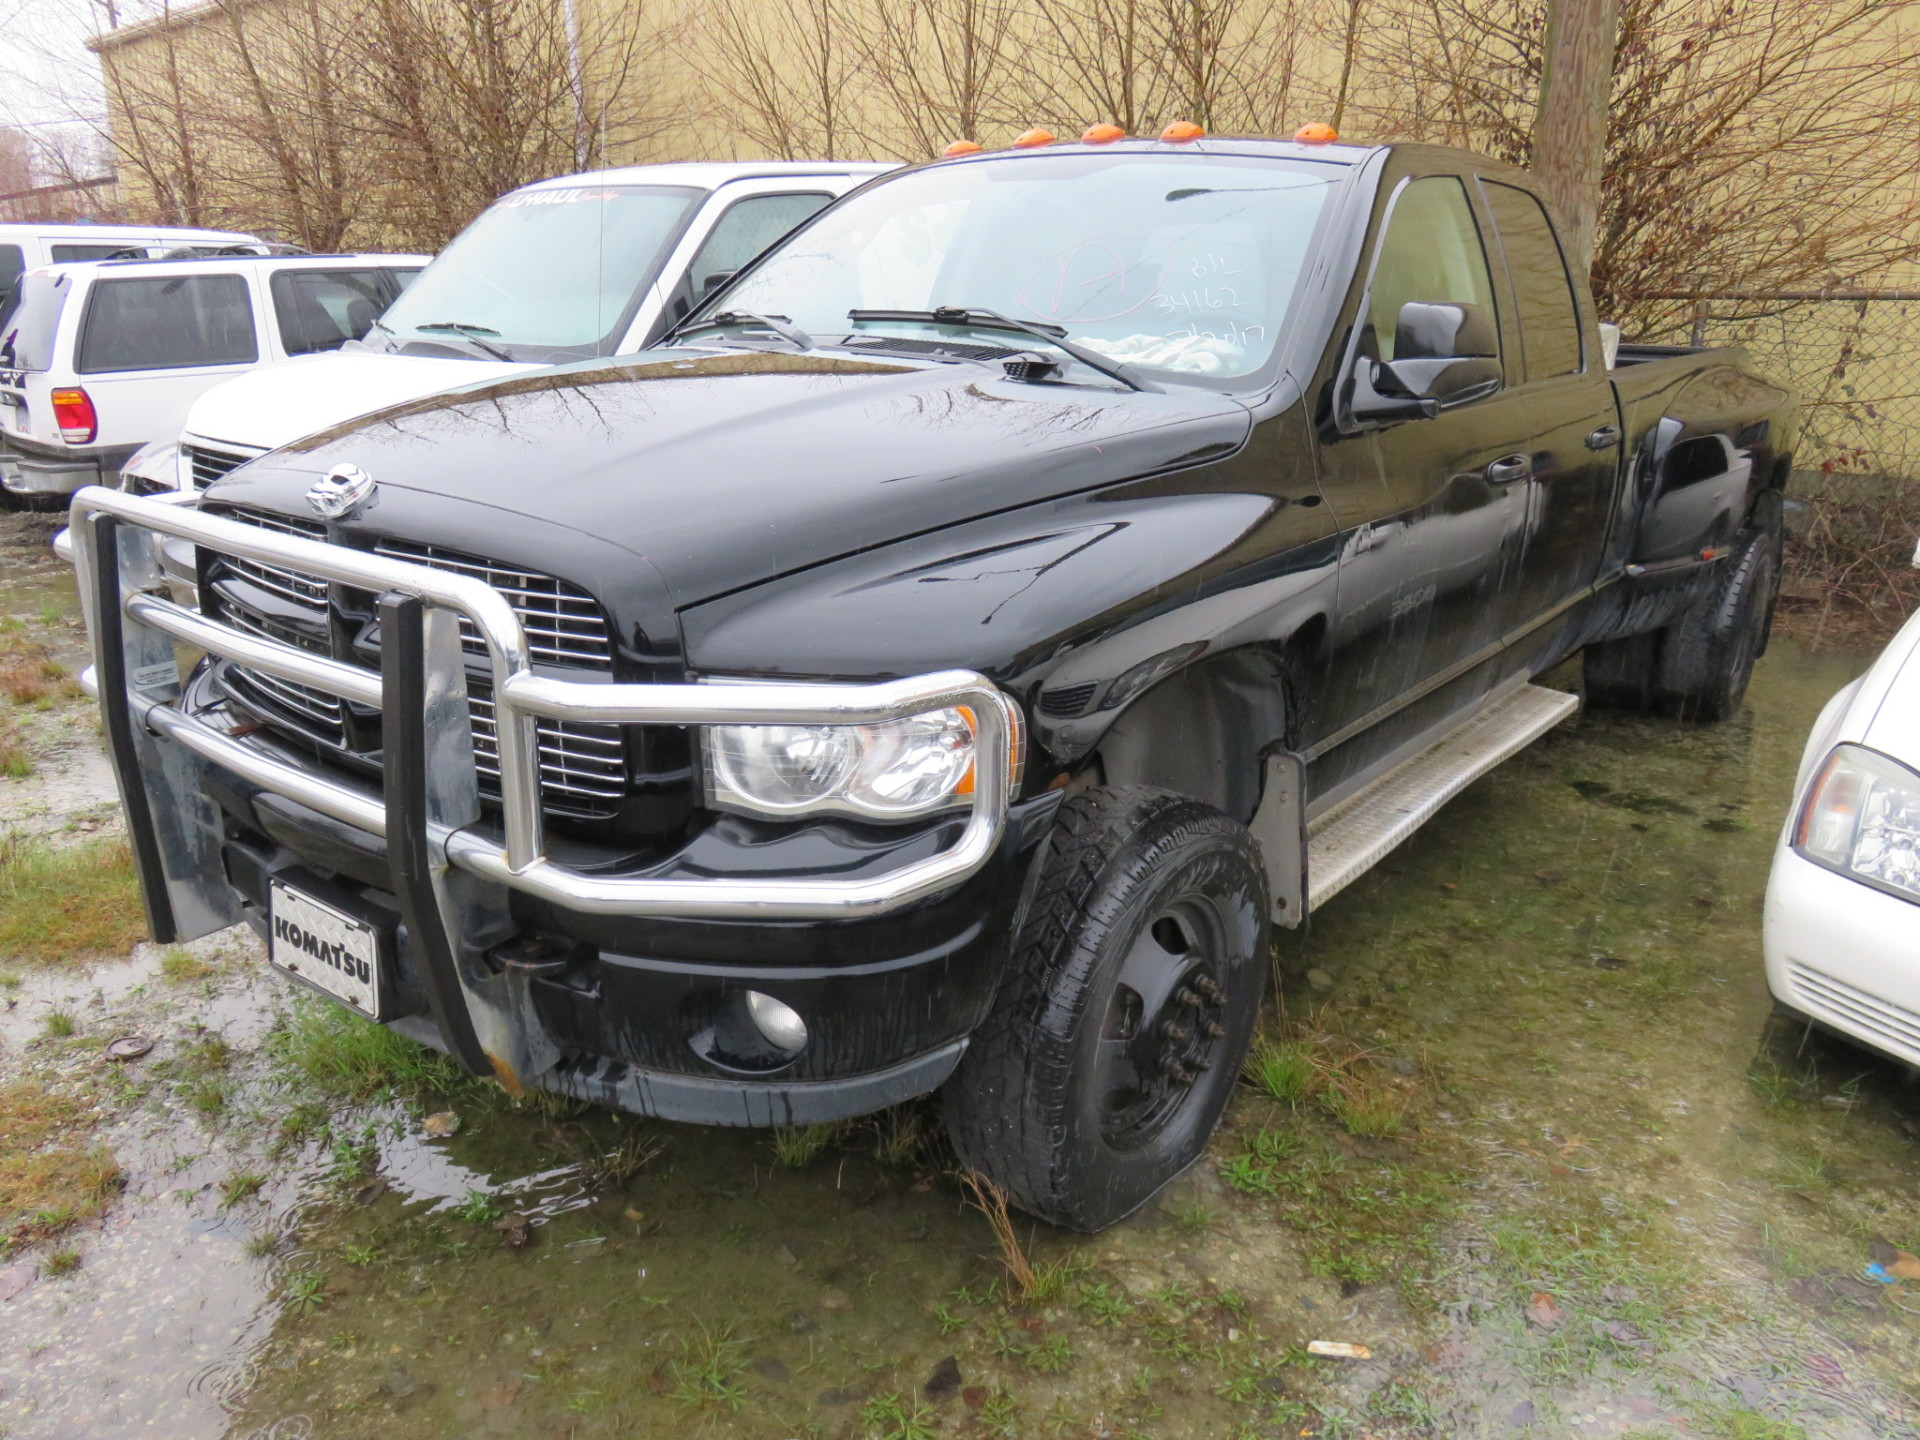 New Westminster, Seized, Auction, Vehicle, Impound, All City Auction, All City Auctioneers